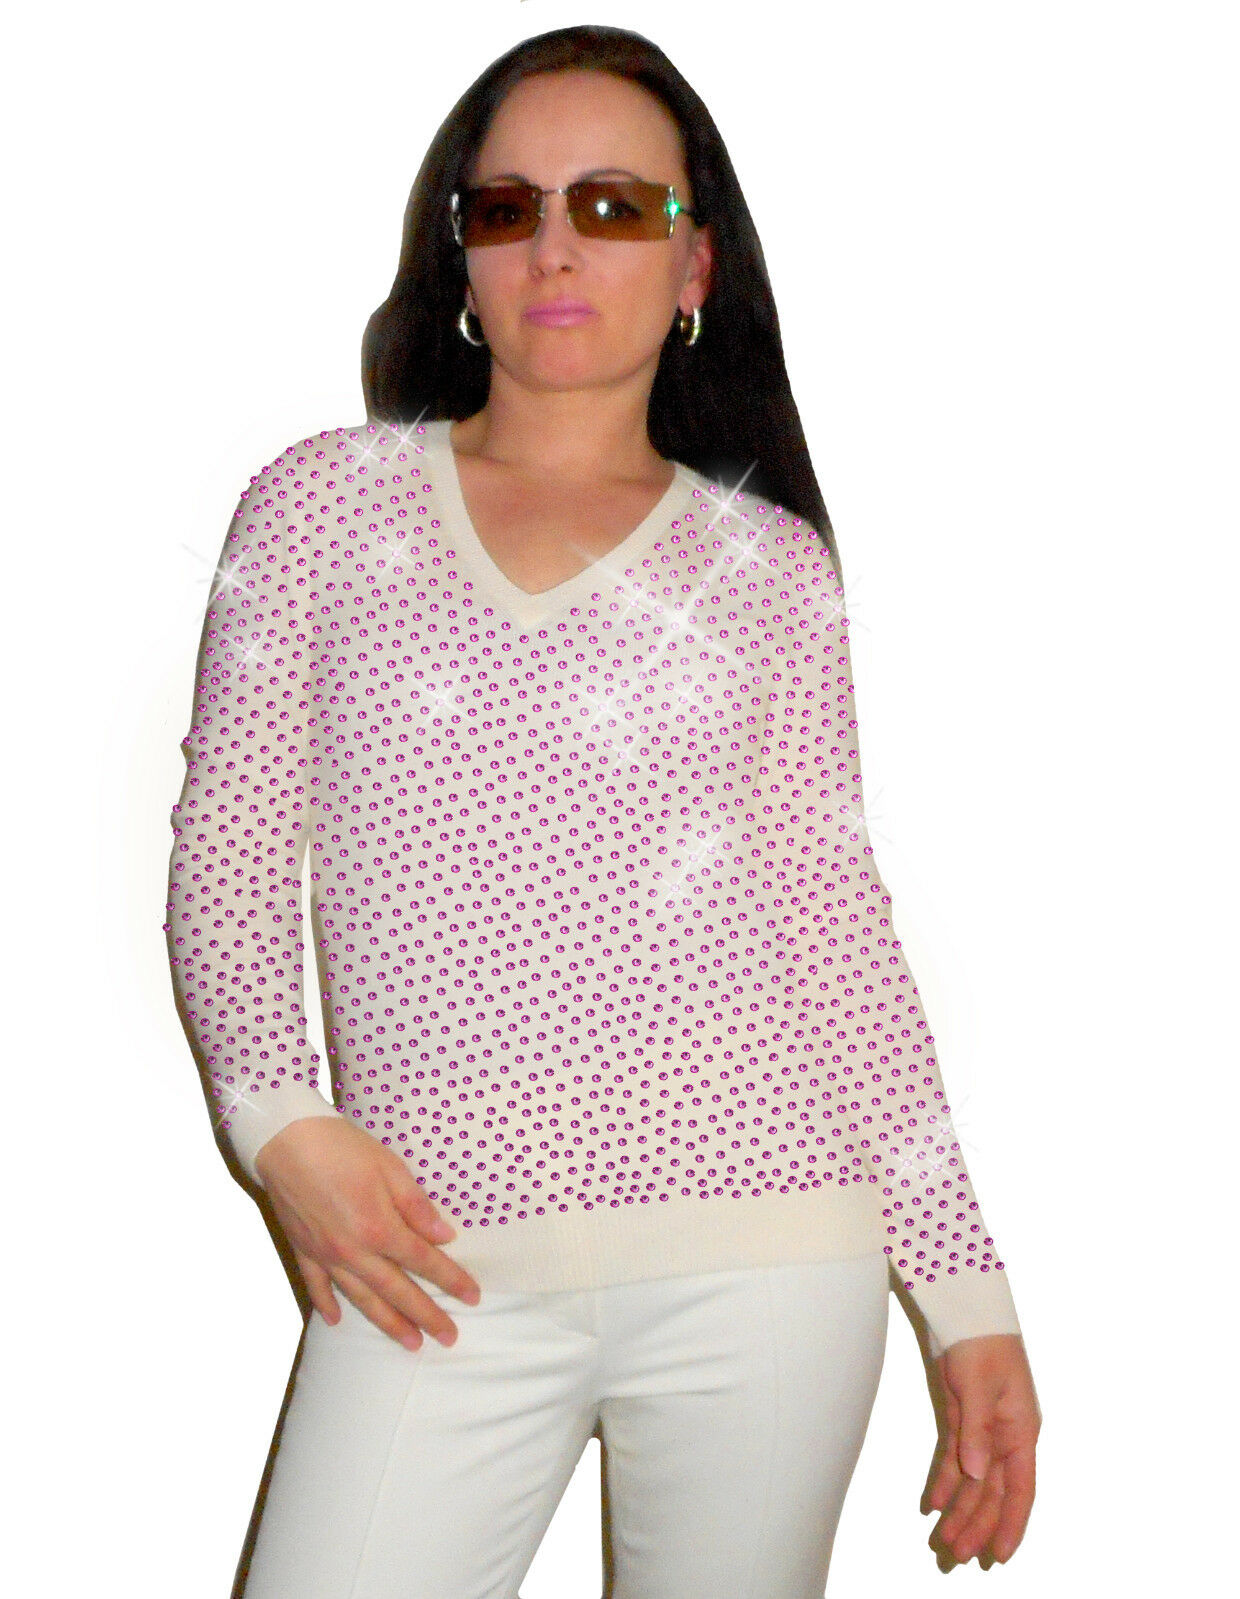 Luxe Oh` Dor 100% Cashmere Cashmere Cashmere Sweater Elite White Pink 46 1623.1oz  XL Luxury 3ca413